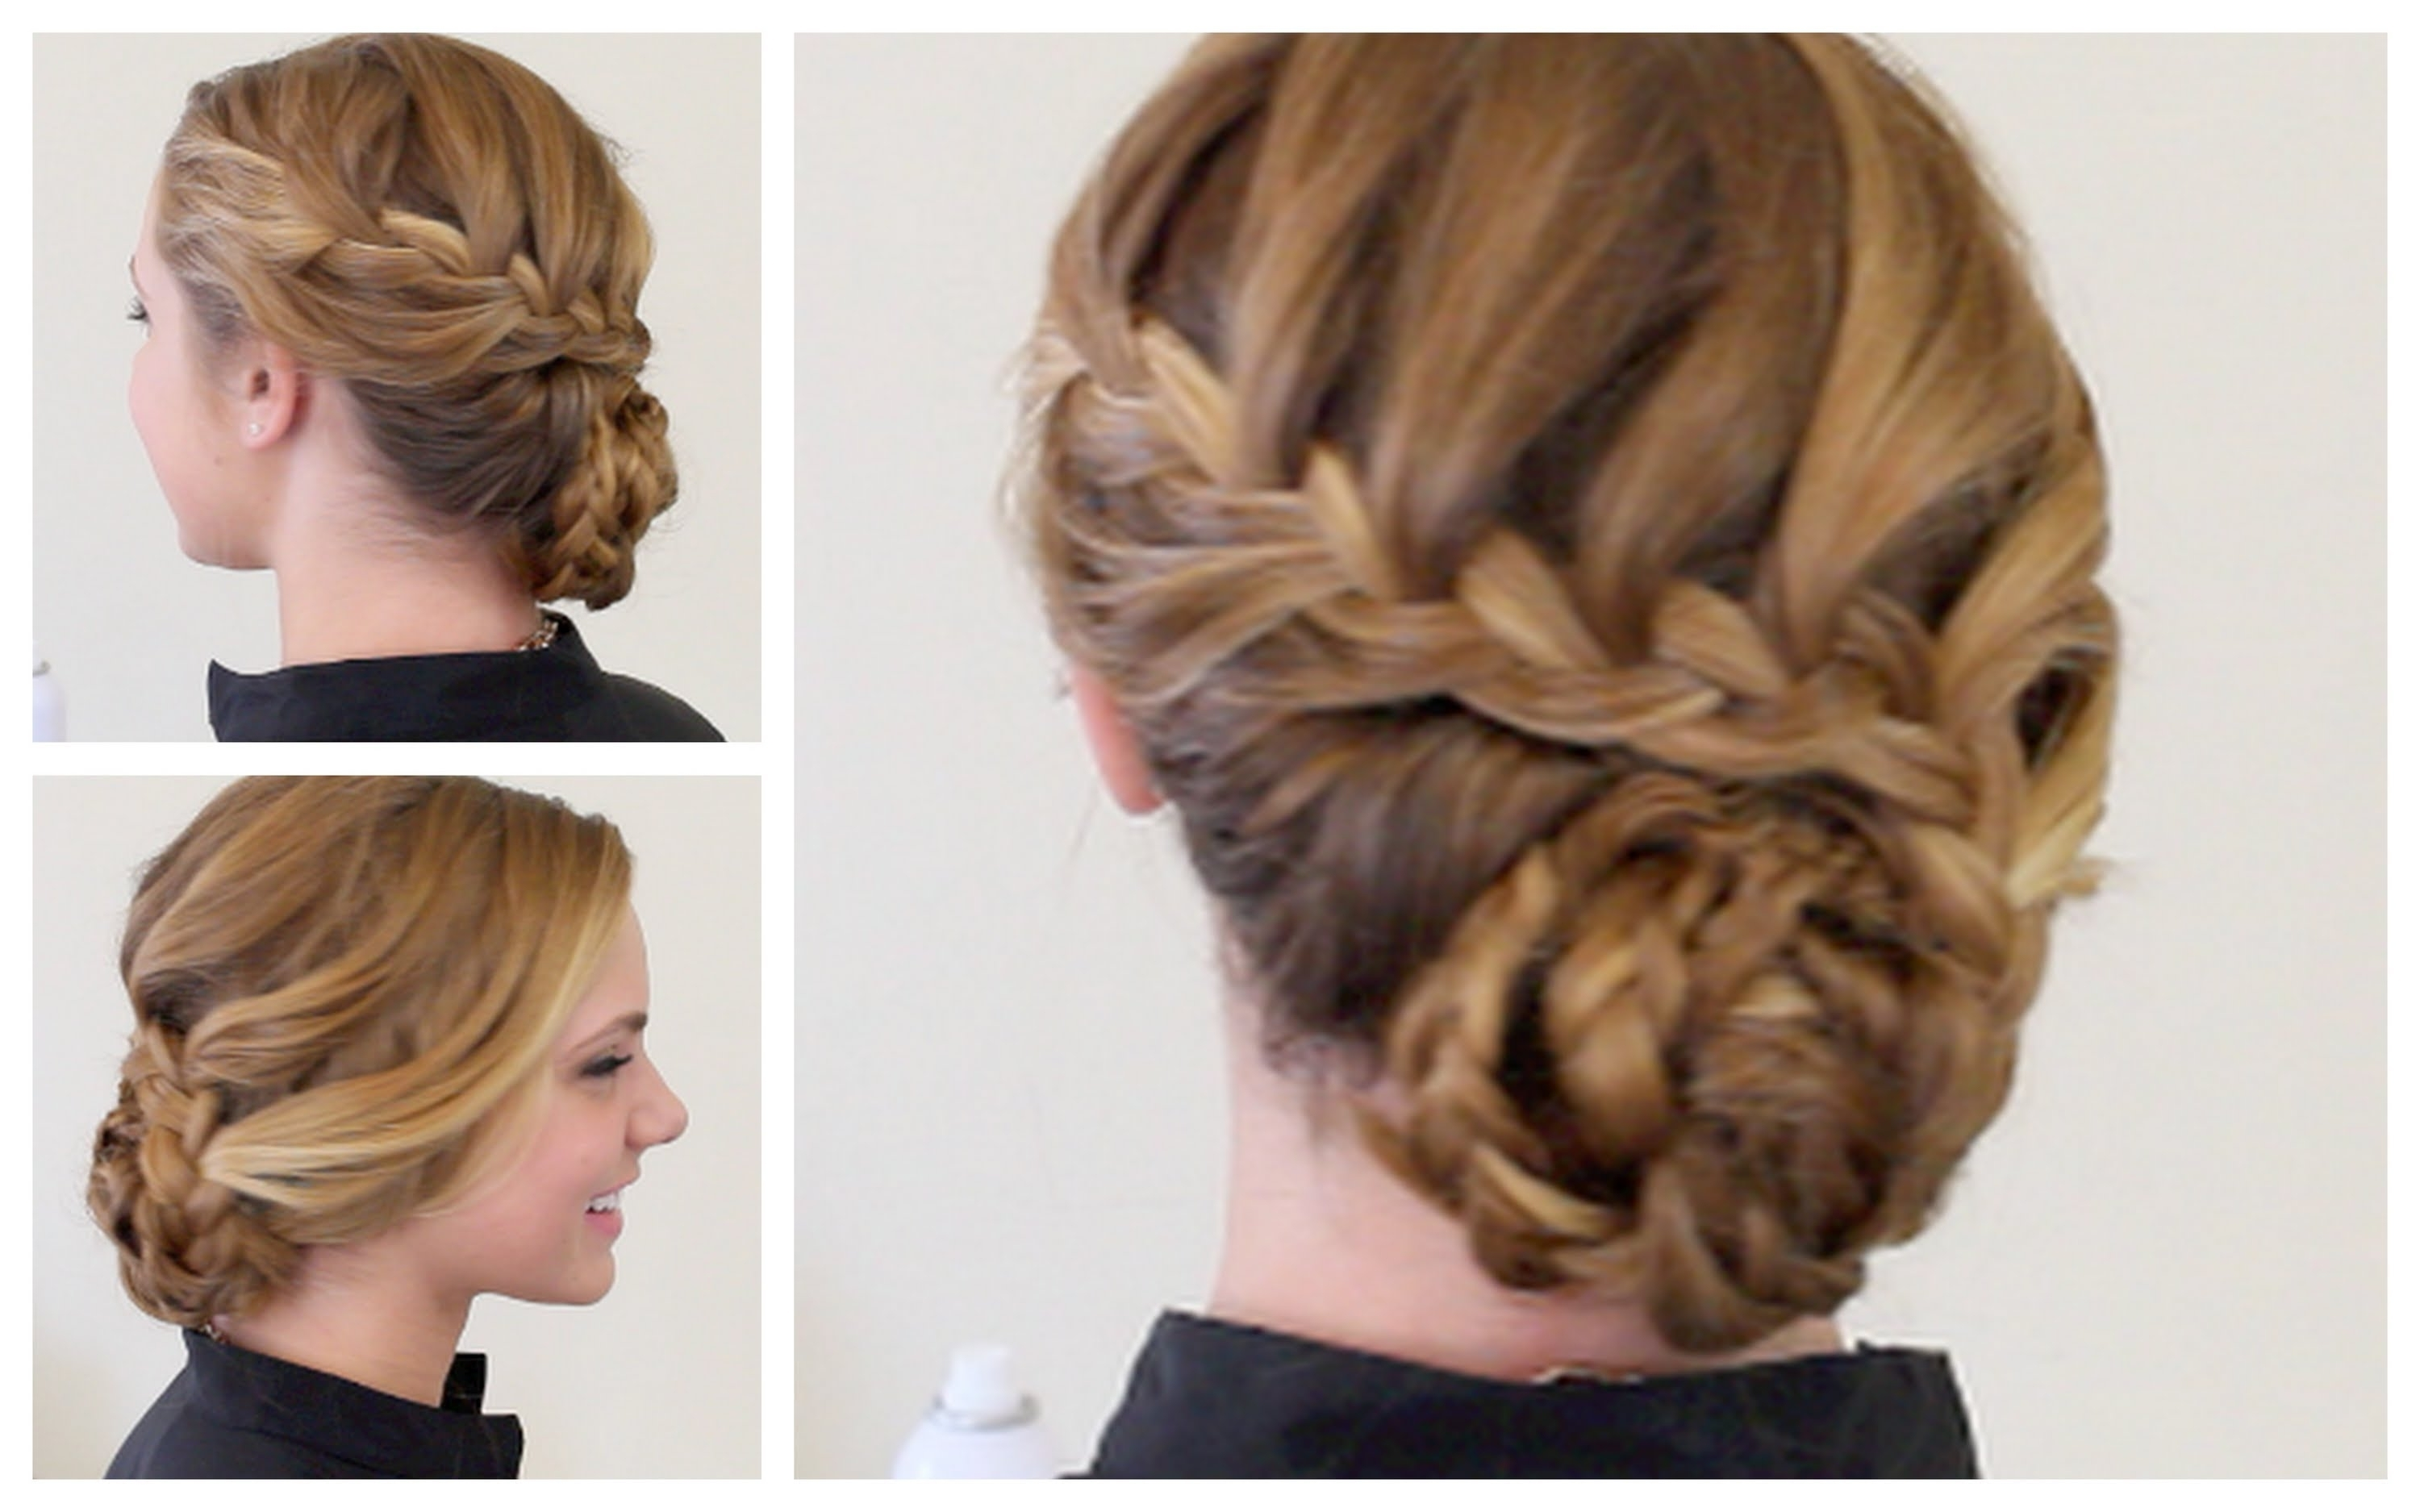 Updo Formal Hairstyles Braided Updo Hairstyle For Mediumlong Hair Throughout Widely Used Braided Updo With Curls (Gallery 4 of 15)